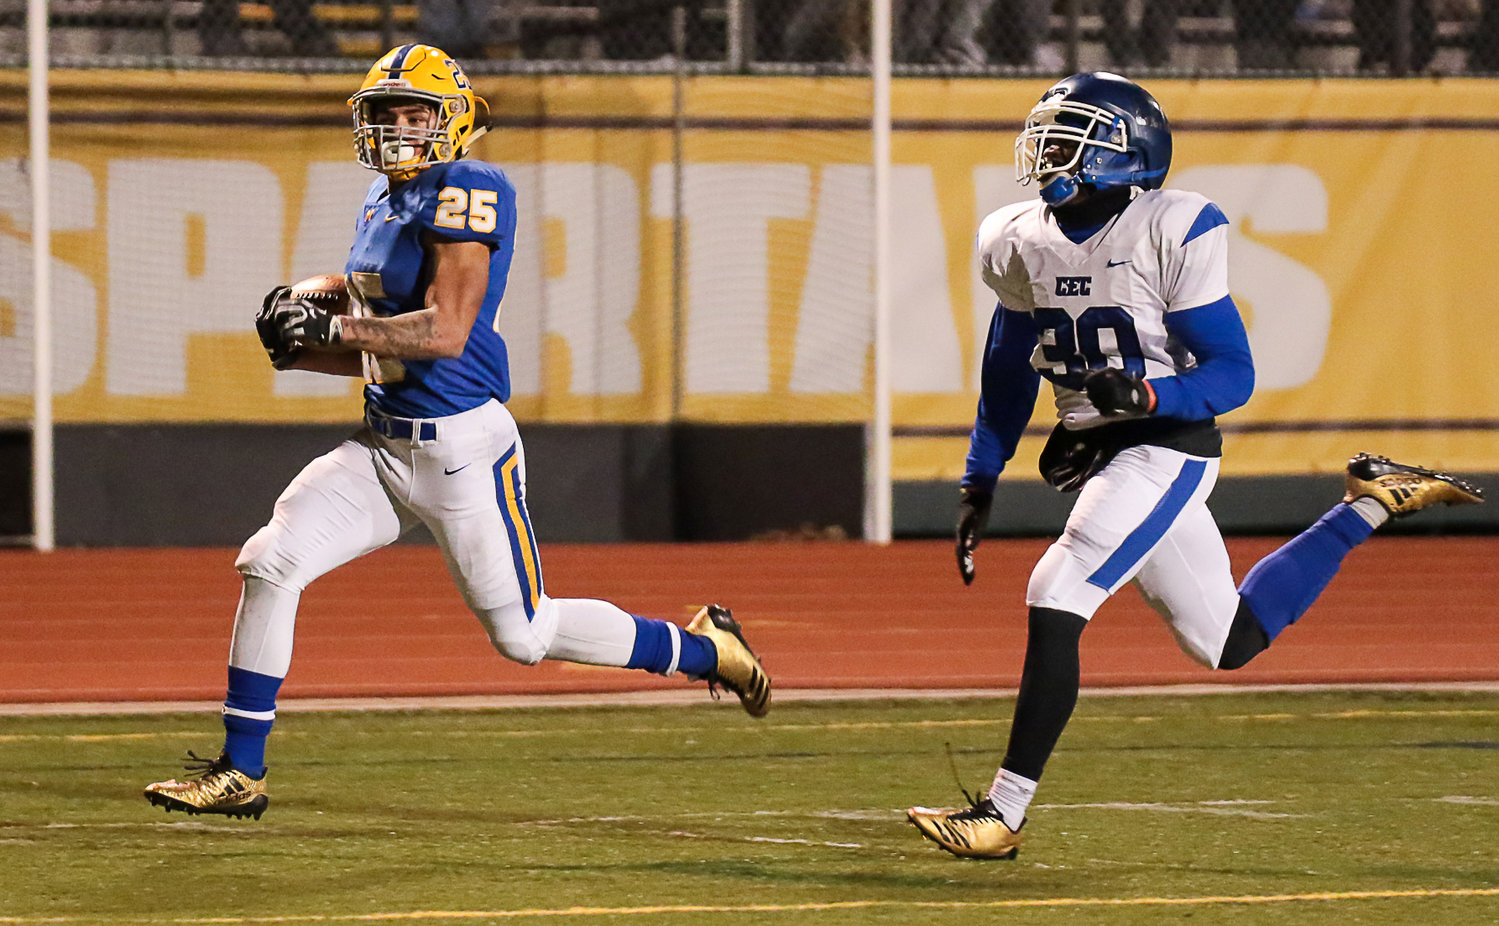 A Conwell-Egan defender can't catch Jose Lopez during Middletown's 21-14 win at Milton Hershey High School in the PIAA 3A state quarterfinals Nov. 23.